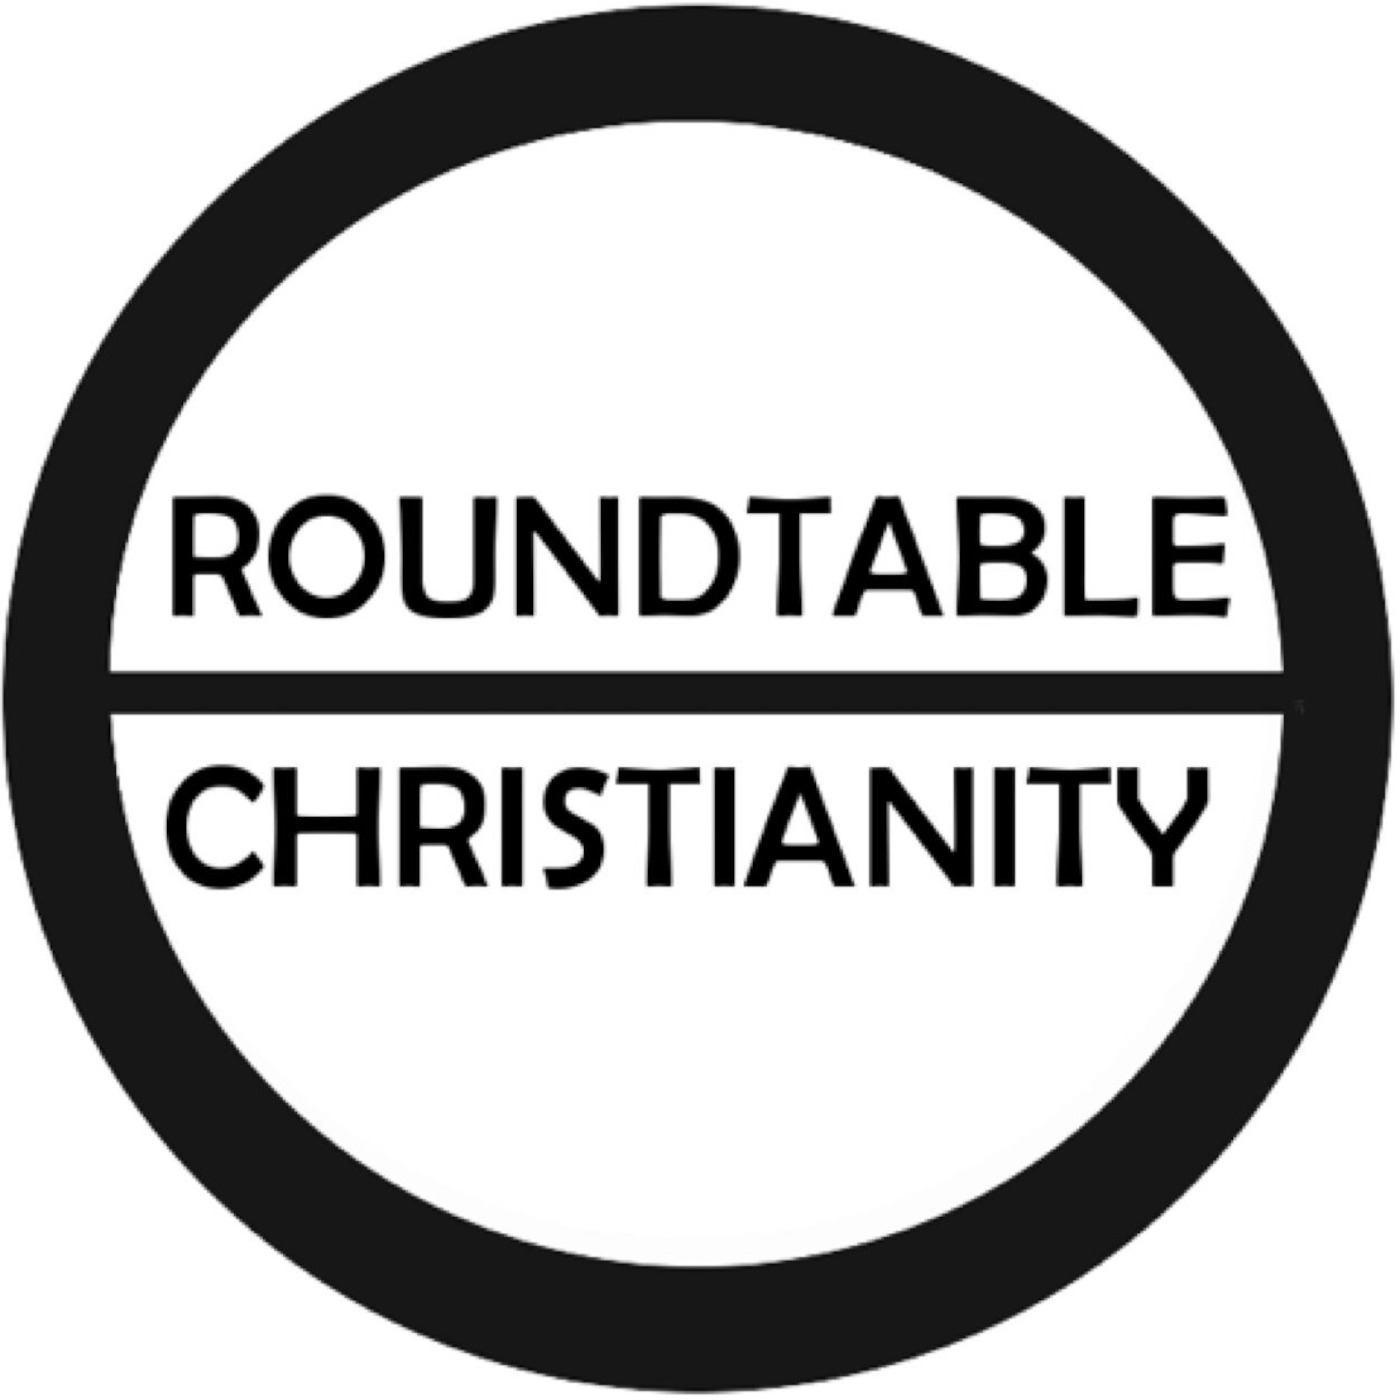 Roundtable Christianity